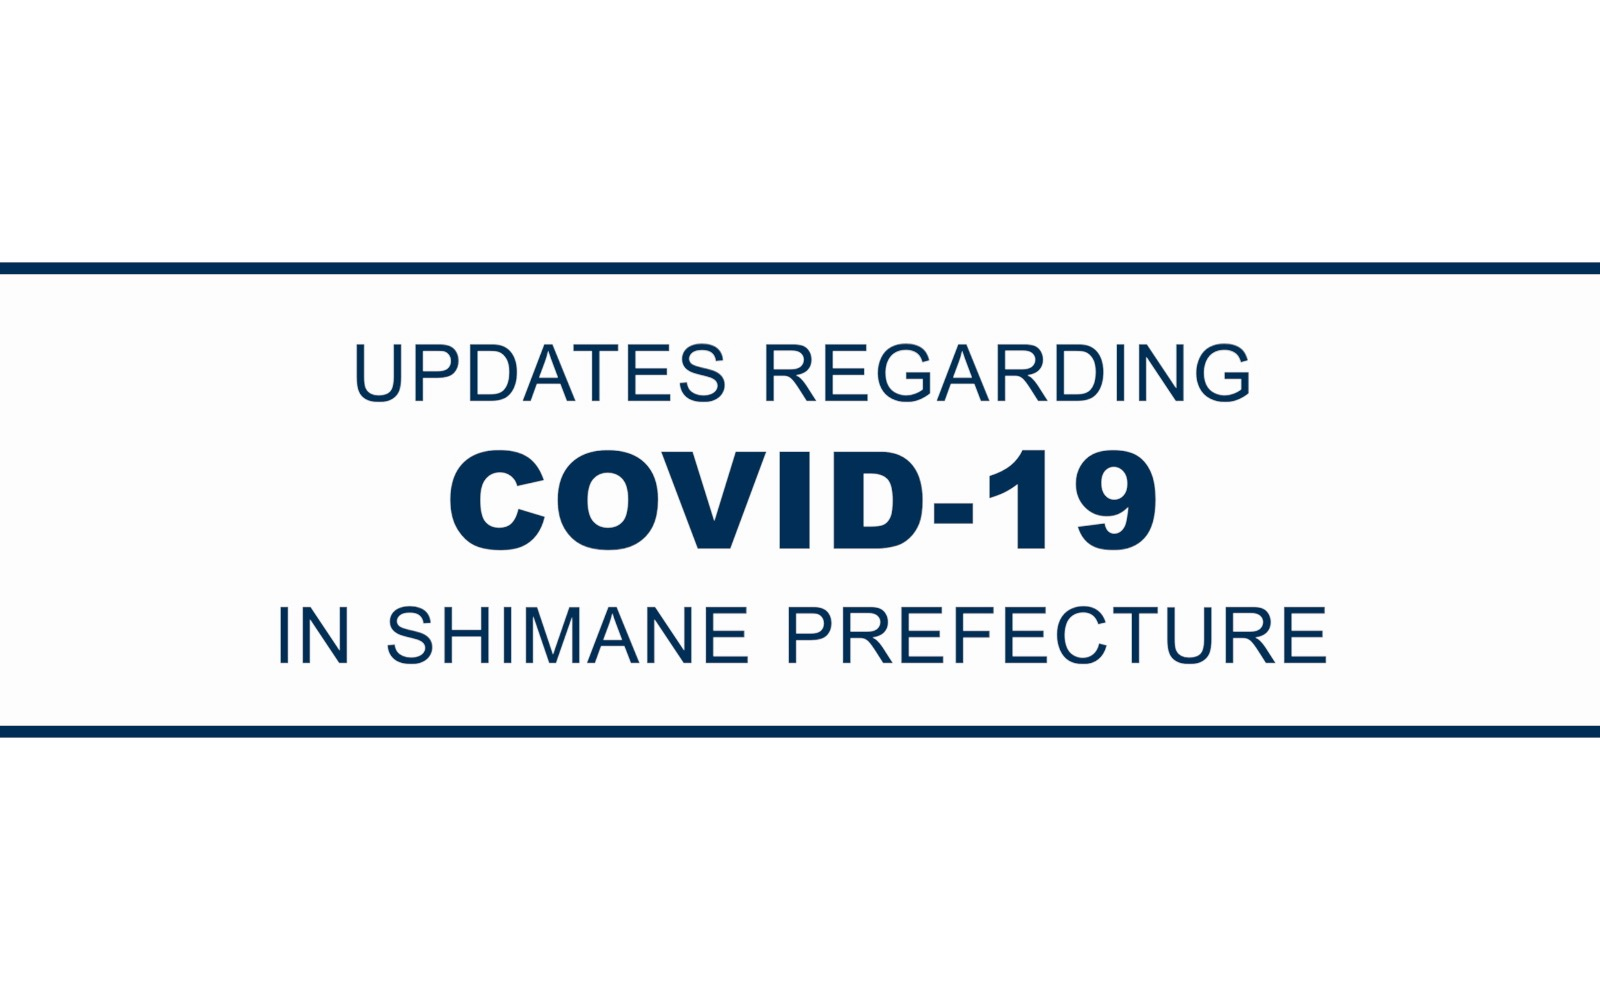 COVID-19 Information Updates